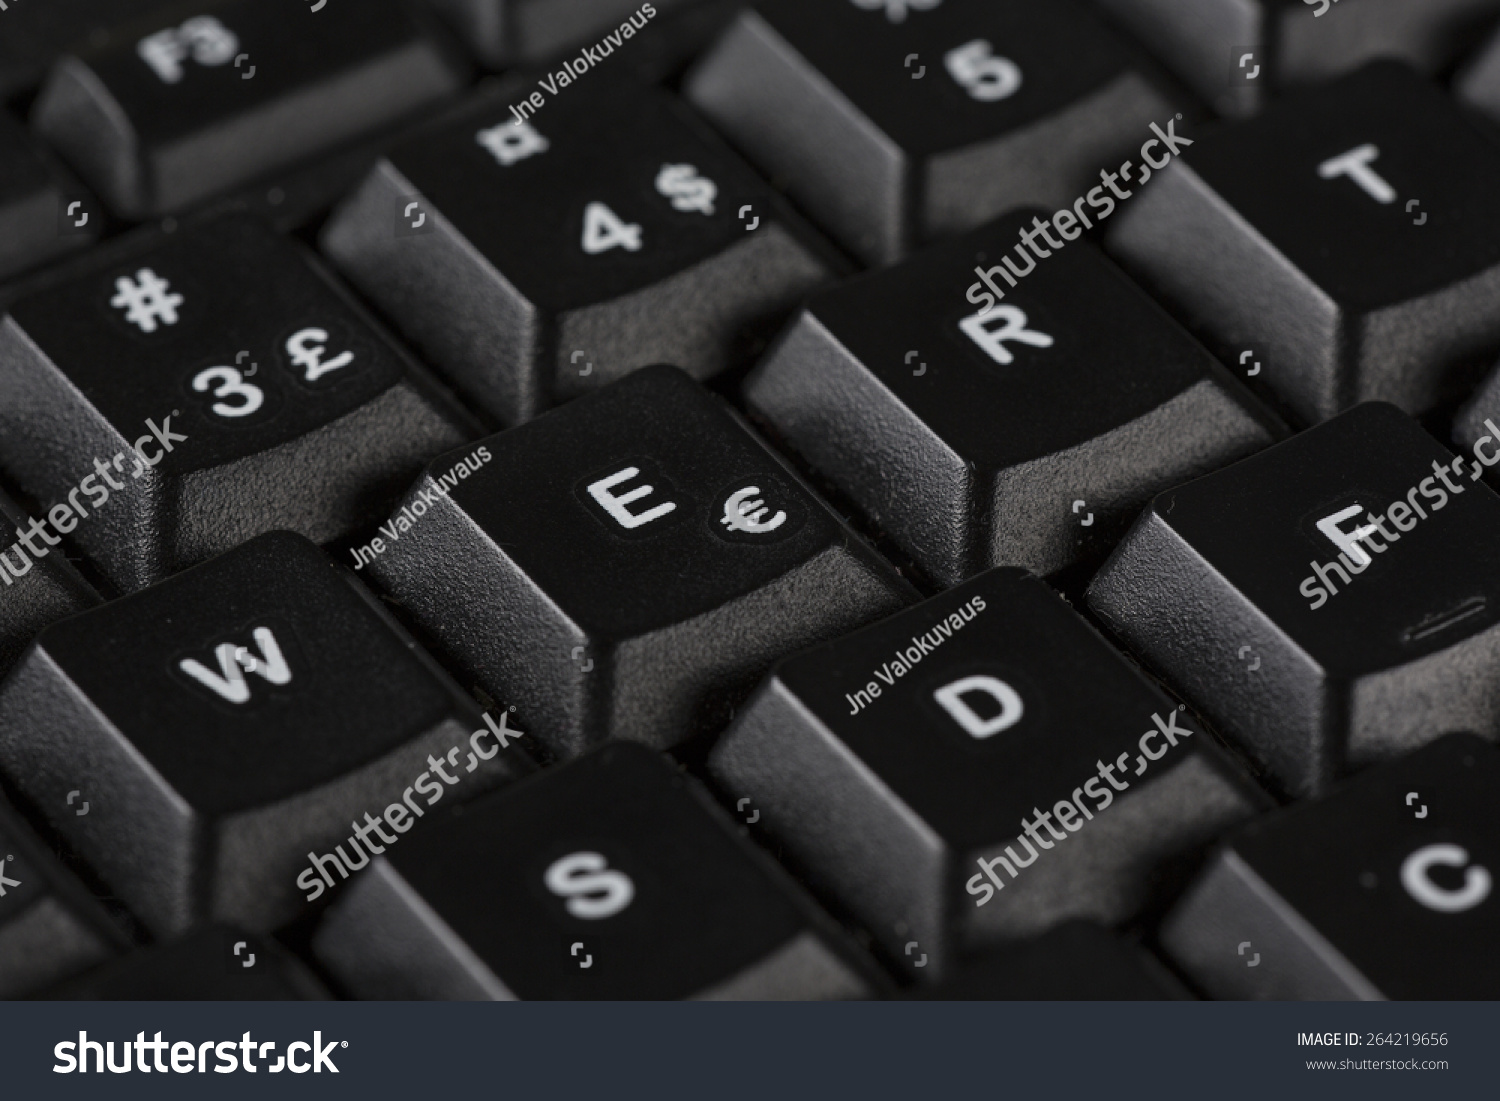 Macro Shot Black Keyboard E Euro Stock Photo Royalty Free